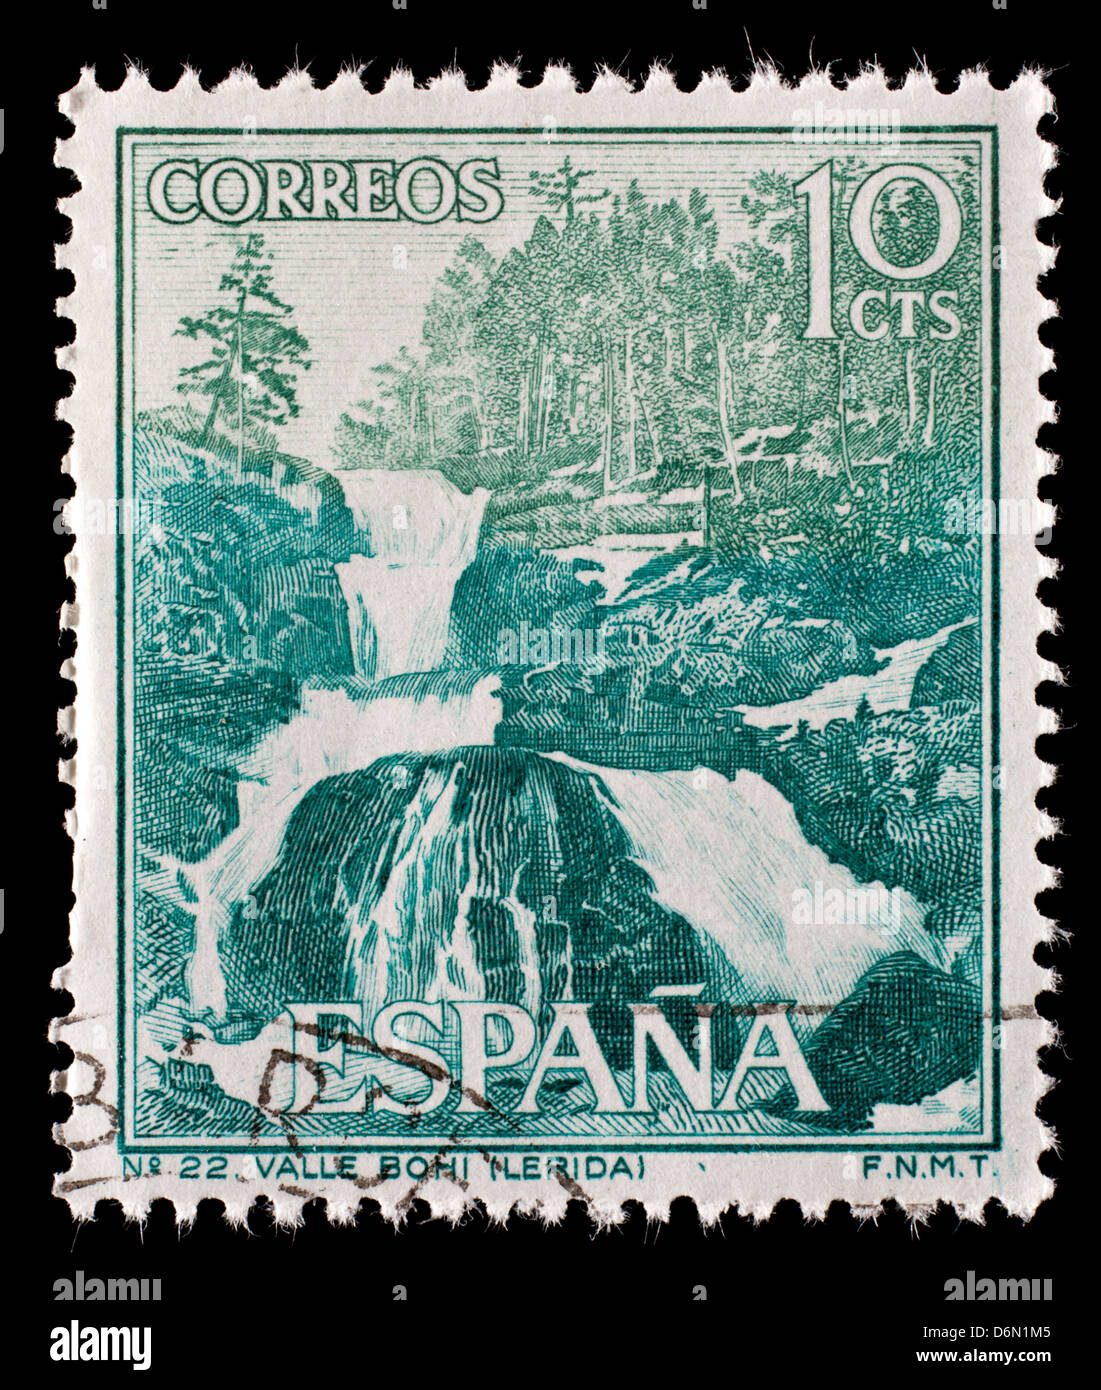 Postage Stamp From Spain Depicting The Bohi Valley